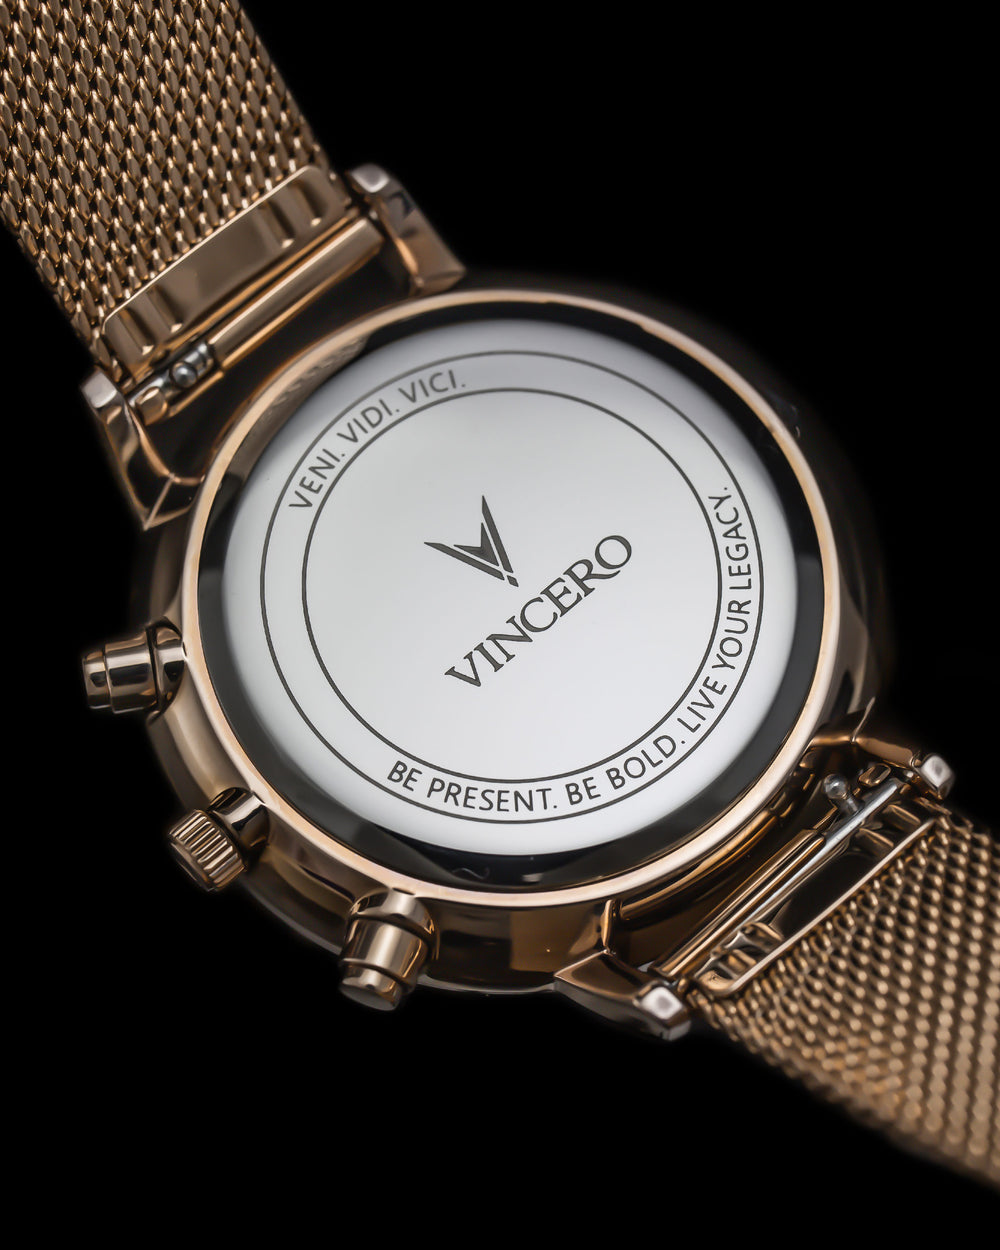 Kleio 316L Stainless Steel Caseback with Veni Vidi Vici Live Your Legacy Engraving